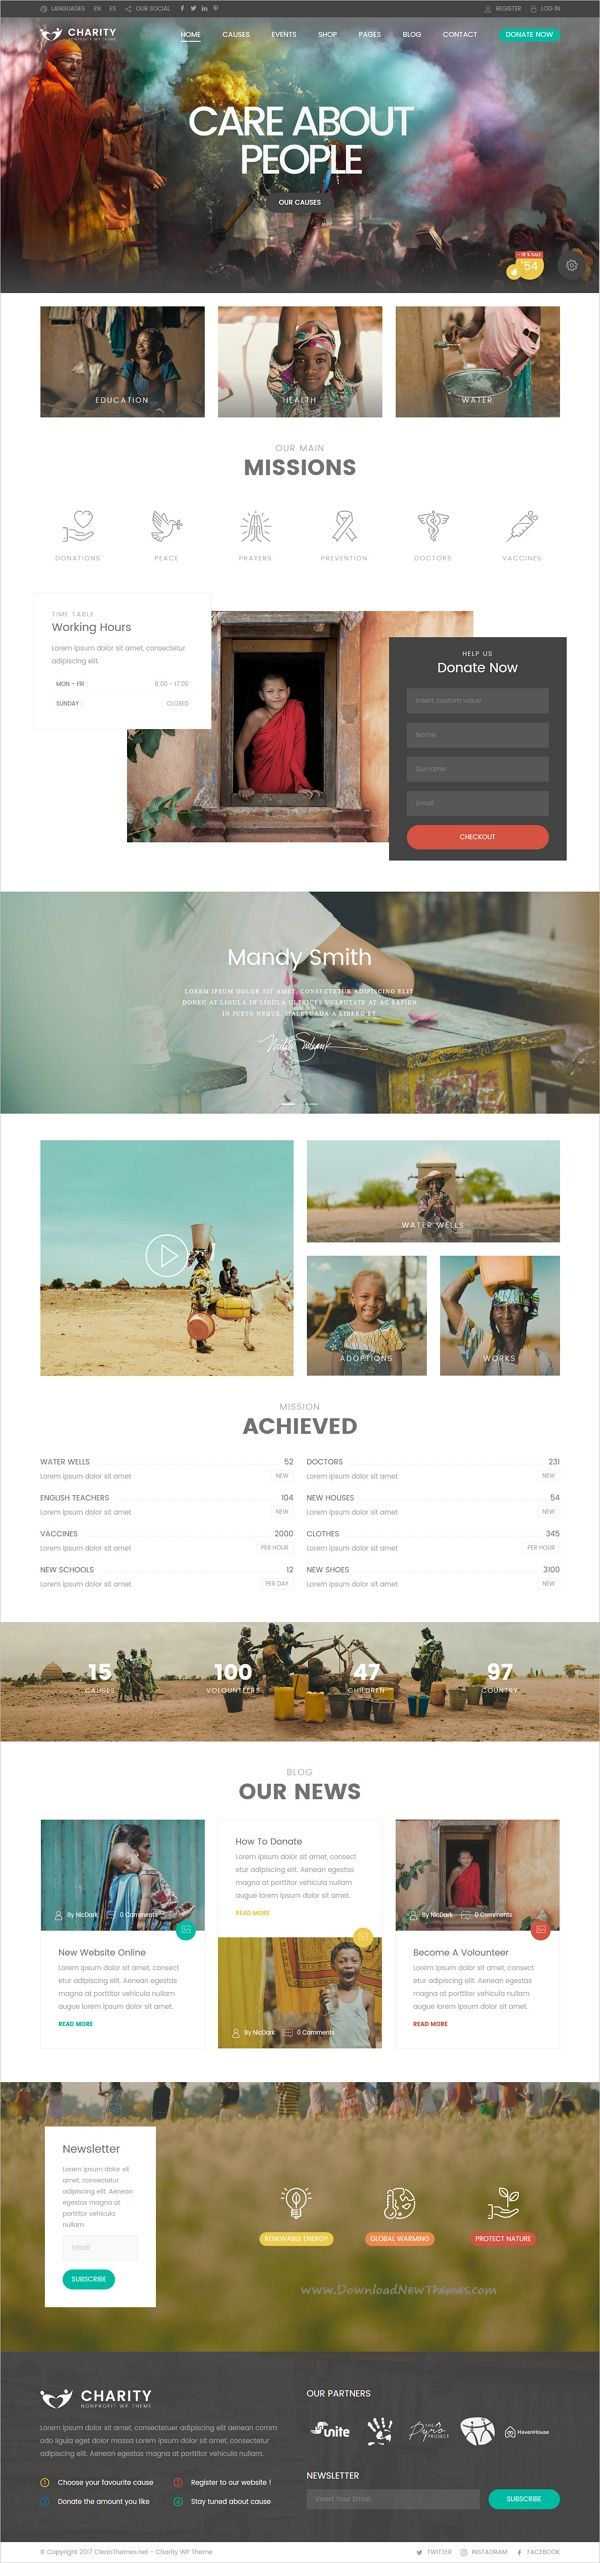 Charity foundation is clean and modern design responsive #WordPress theme for all kind of #Charity, #Fundraising, NGO, Church and other #nonprofit organizations website download now➩ https://themeforest.net/item/charity-foundation-charity-hub-wp-theme/19763204?ref=Datasata